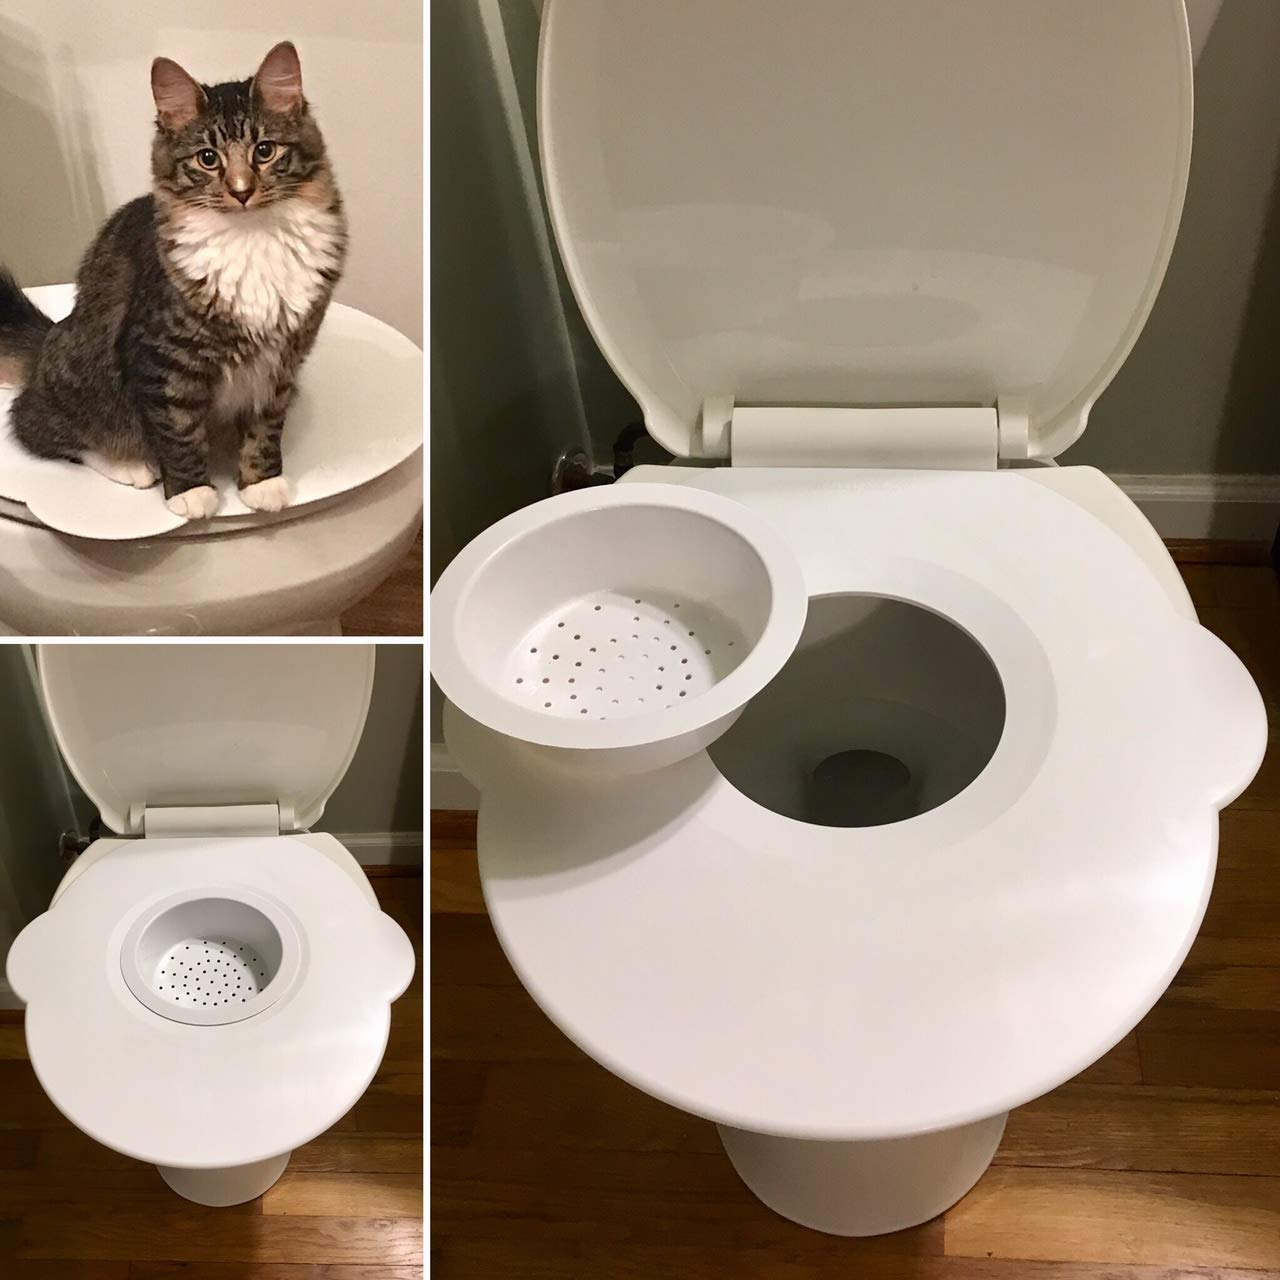 Kitty's Loo - The Best Cat Toilet Seat - Cat Toilet Training Kit by Kitty's Loo (Image #1)